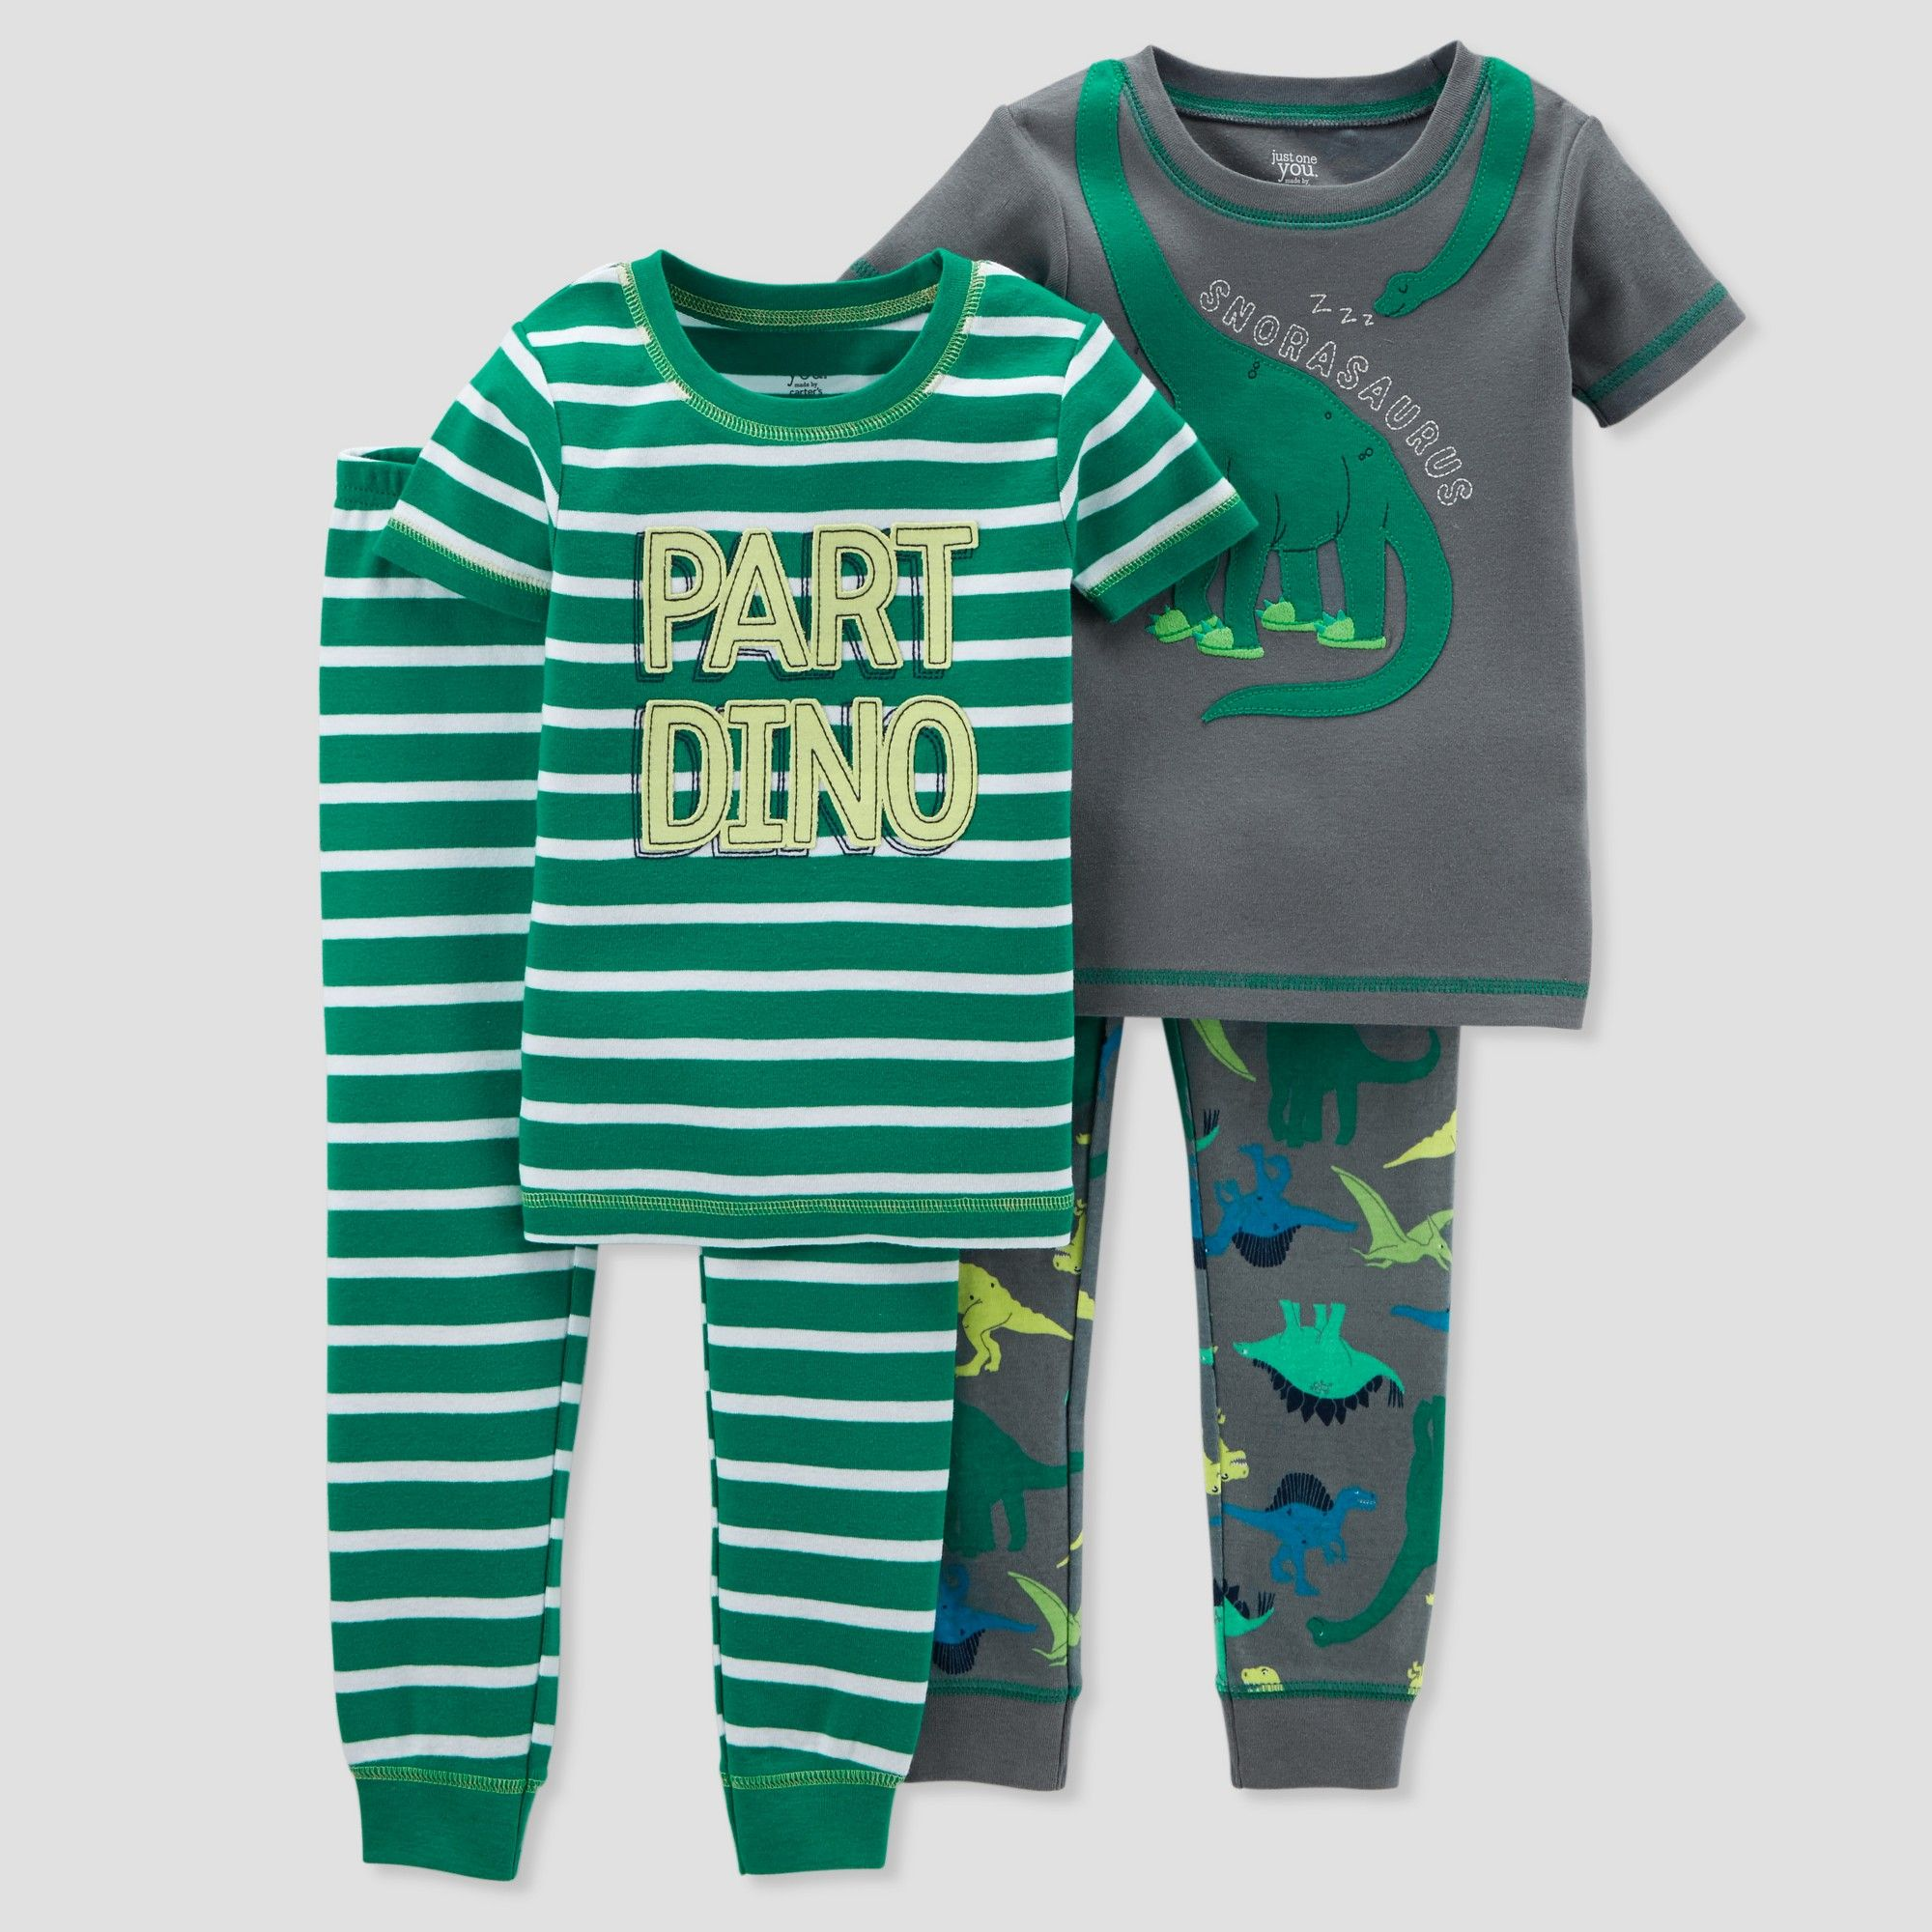 097597fa04d6 Toddler Boys  4pc Cotton Dino Pajama Set - Just One You made by ...